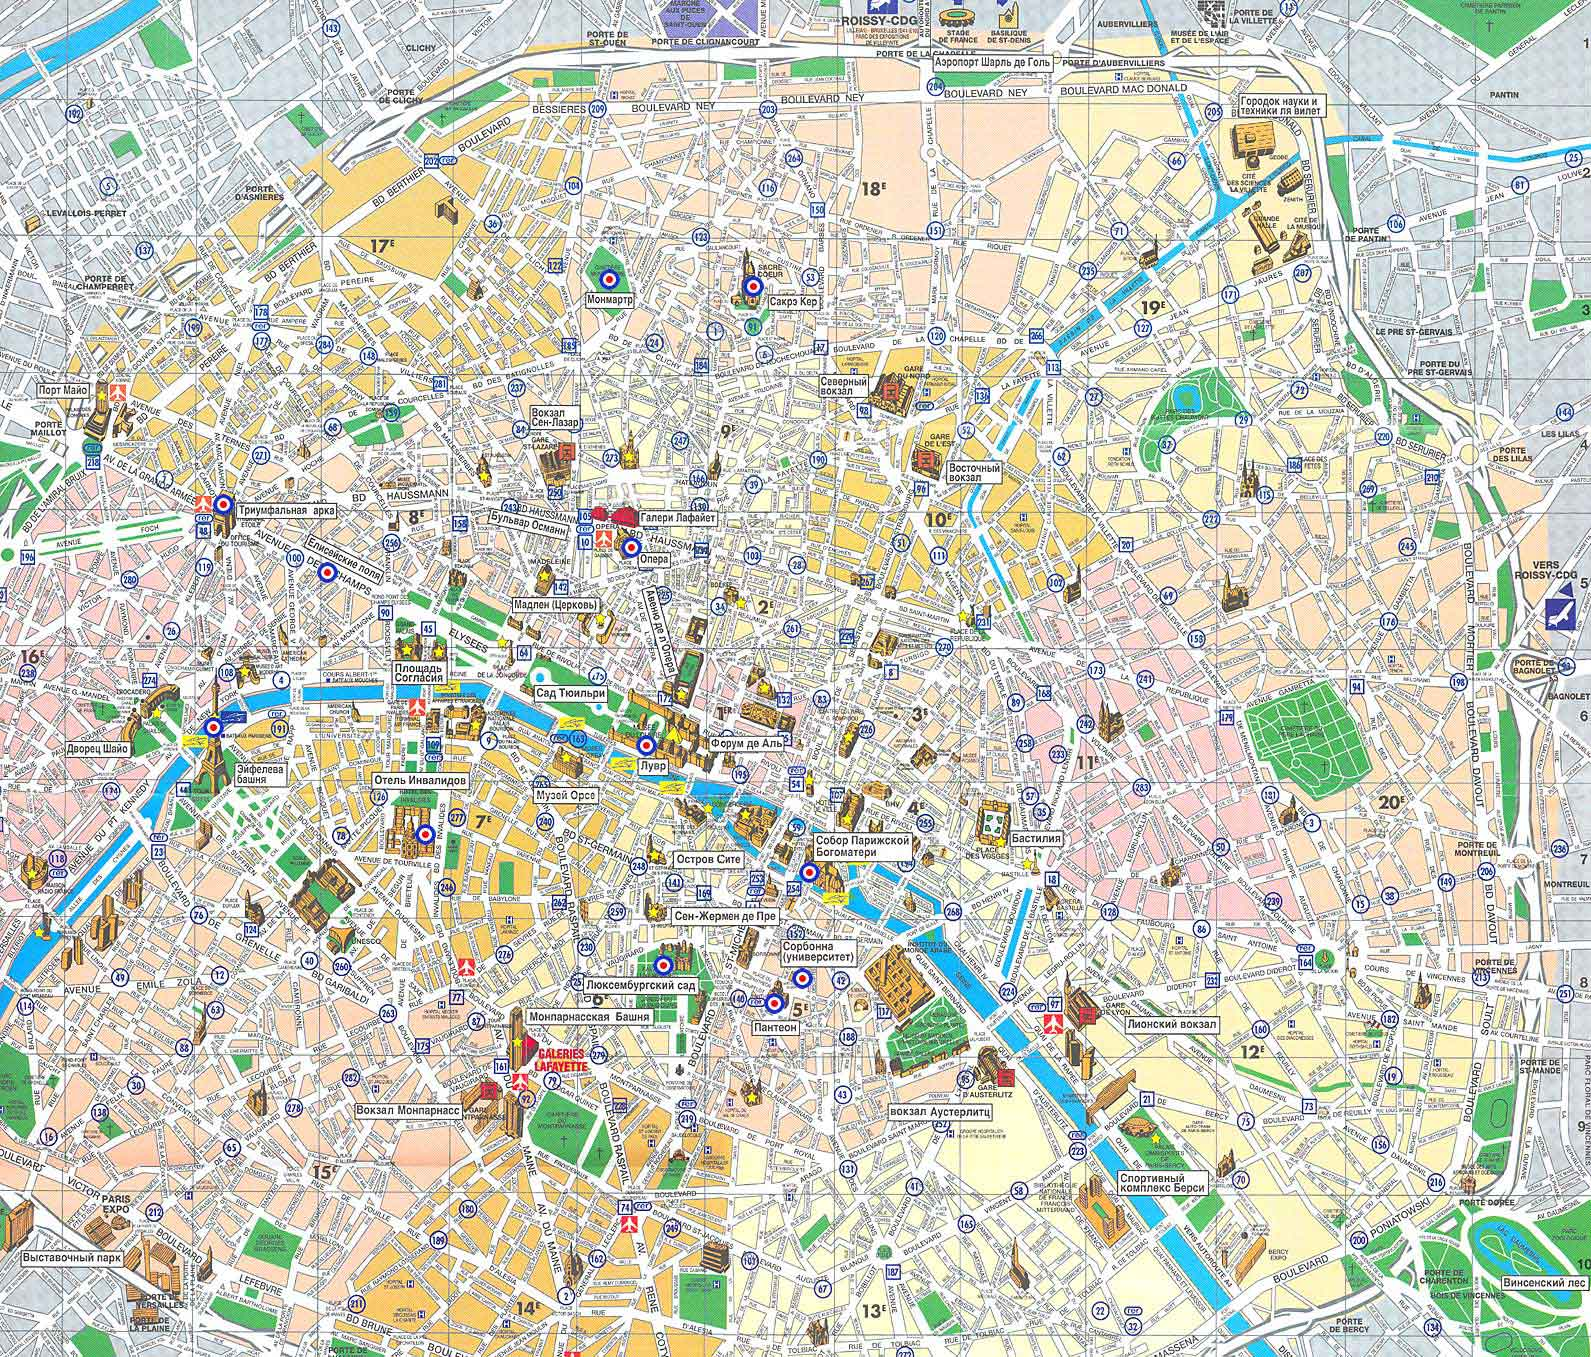 high resolution large map of paris download for print out